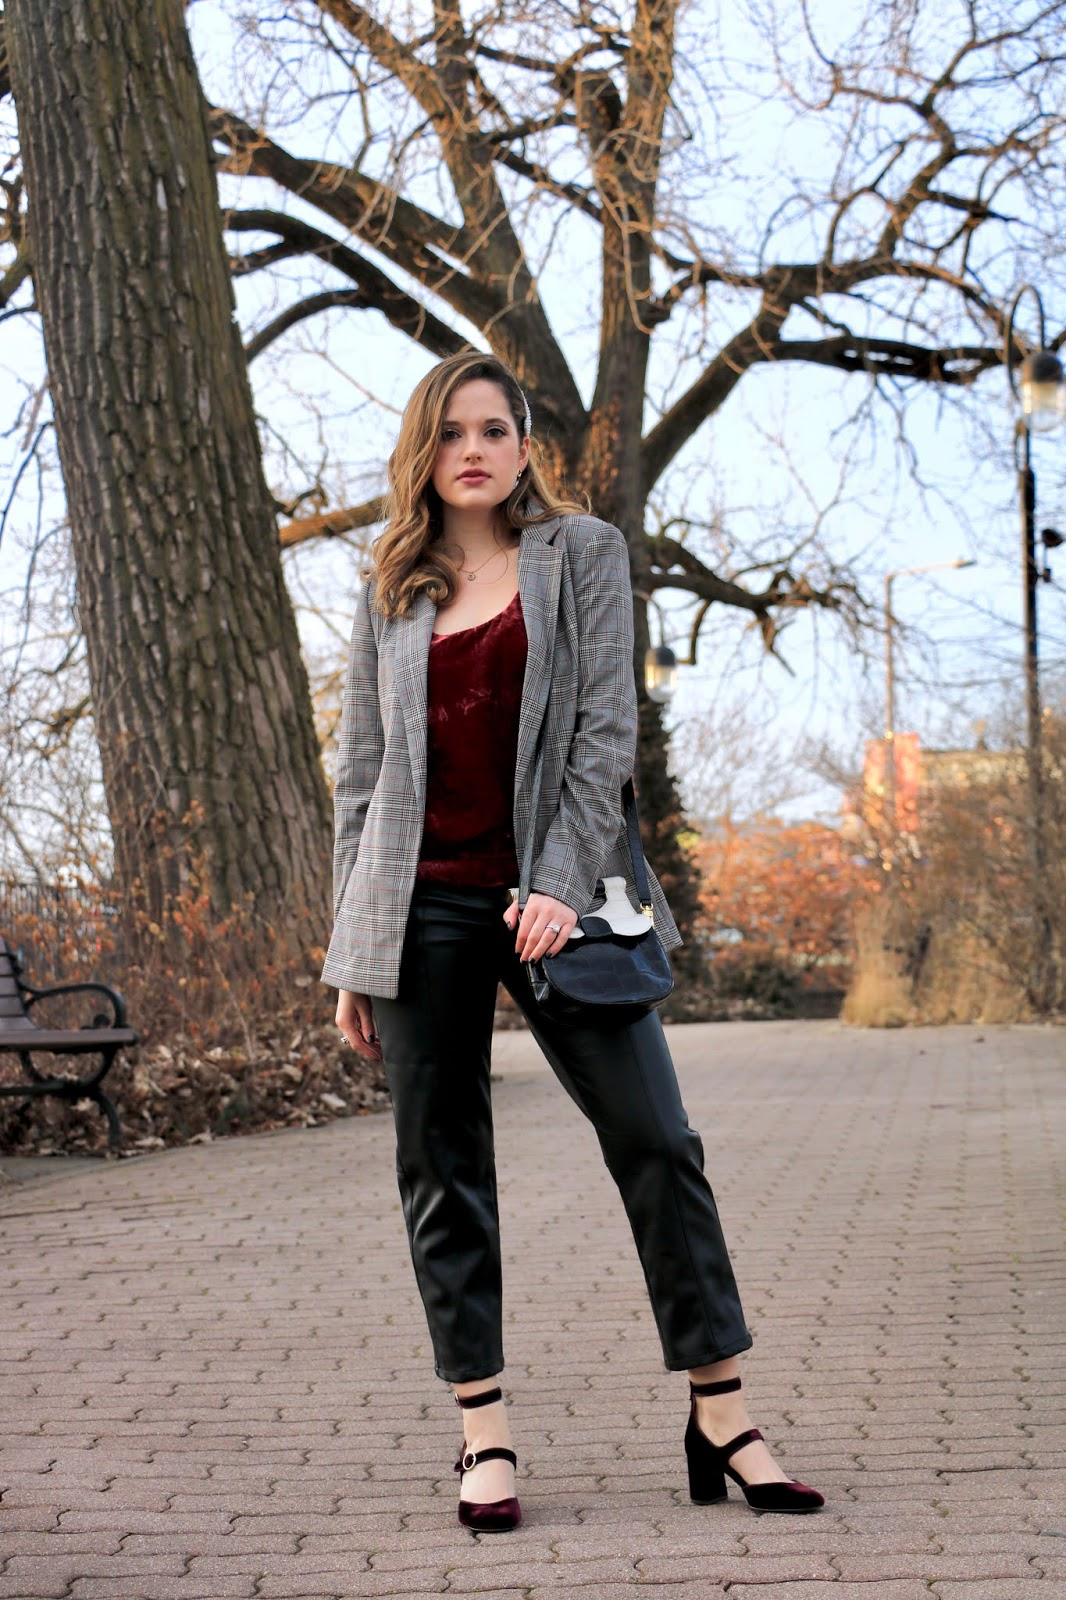 Nyc fashion blogger Kathleen Harper wearing an outfit with leather pants.